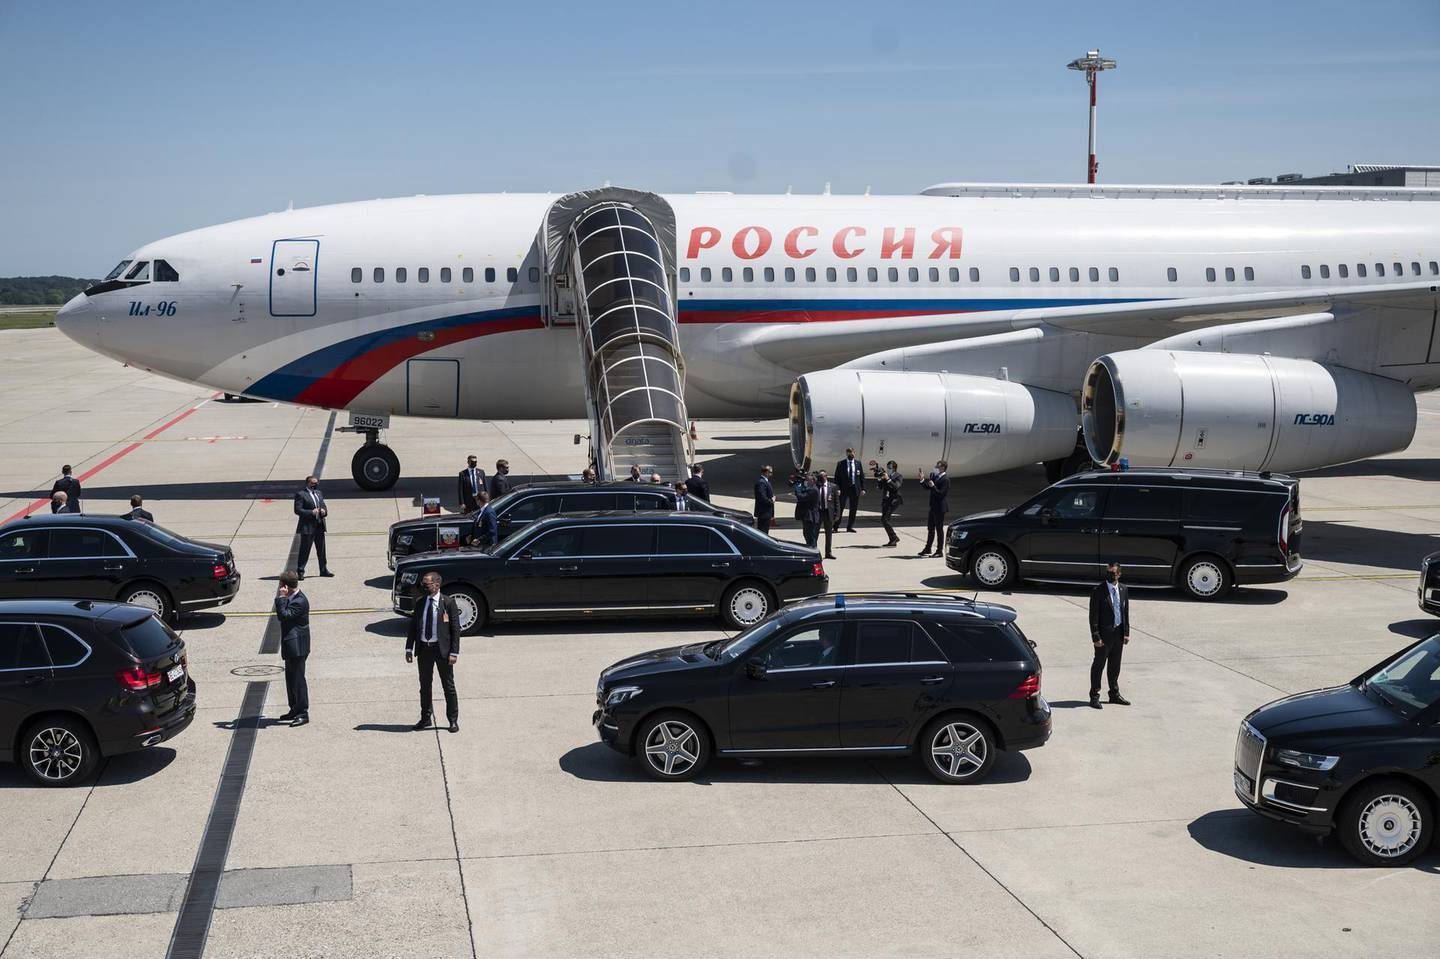 epa09275737 Russian President Vladimir Putin enters the limousine after disembarking from the presidential Ilyushin Il-96-300PU airplane as he arrives at Geneva Airport Cointrin, for a US-Russia summit in Geneva, Switzerland, 16 June 2021. US President Biden and Russian President Putin meet in Geneva on 16 June for face-to-face talks.  EPA/ALESSANDRO DELLA VALLE / POOL